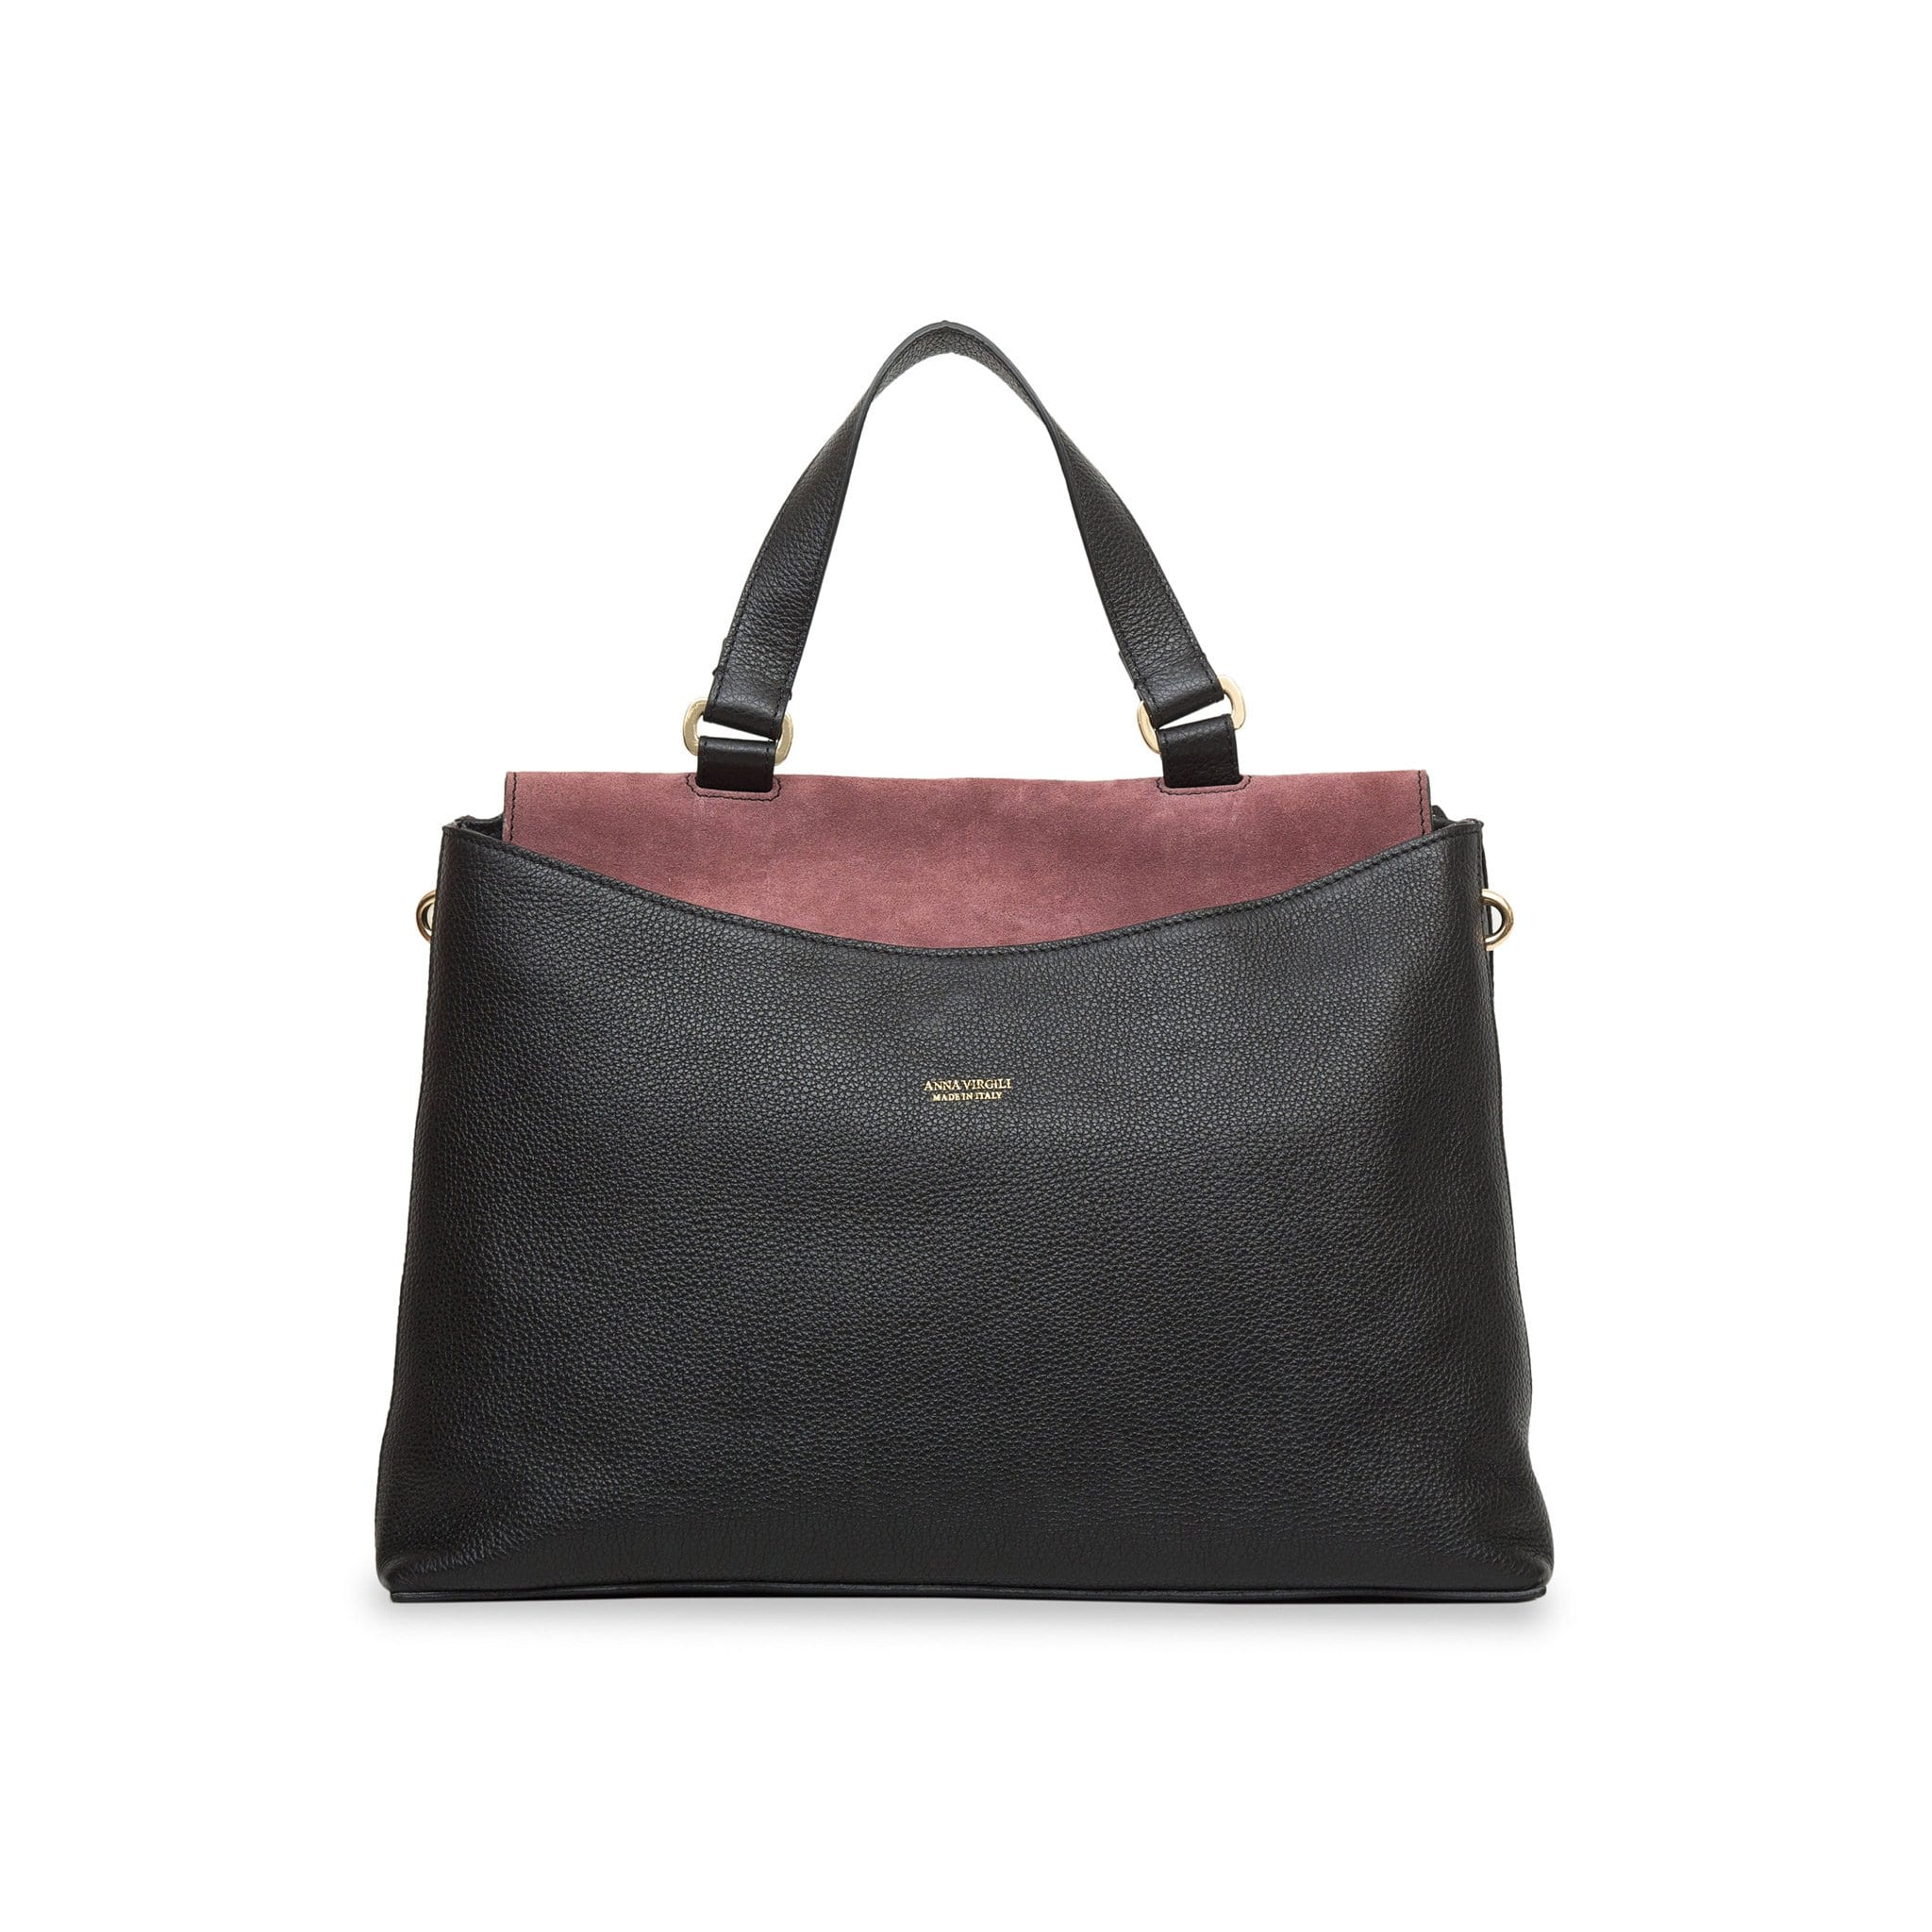 Eva Matera Leather Handbag - Multi Black